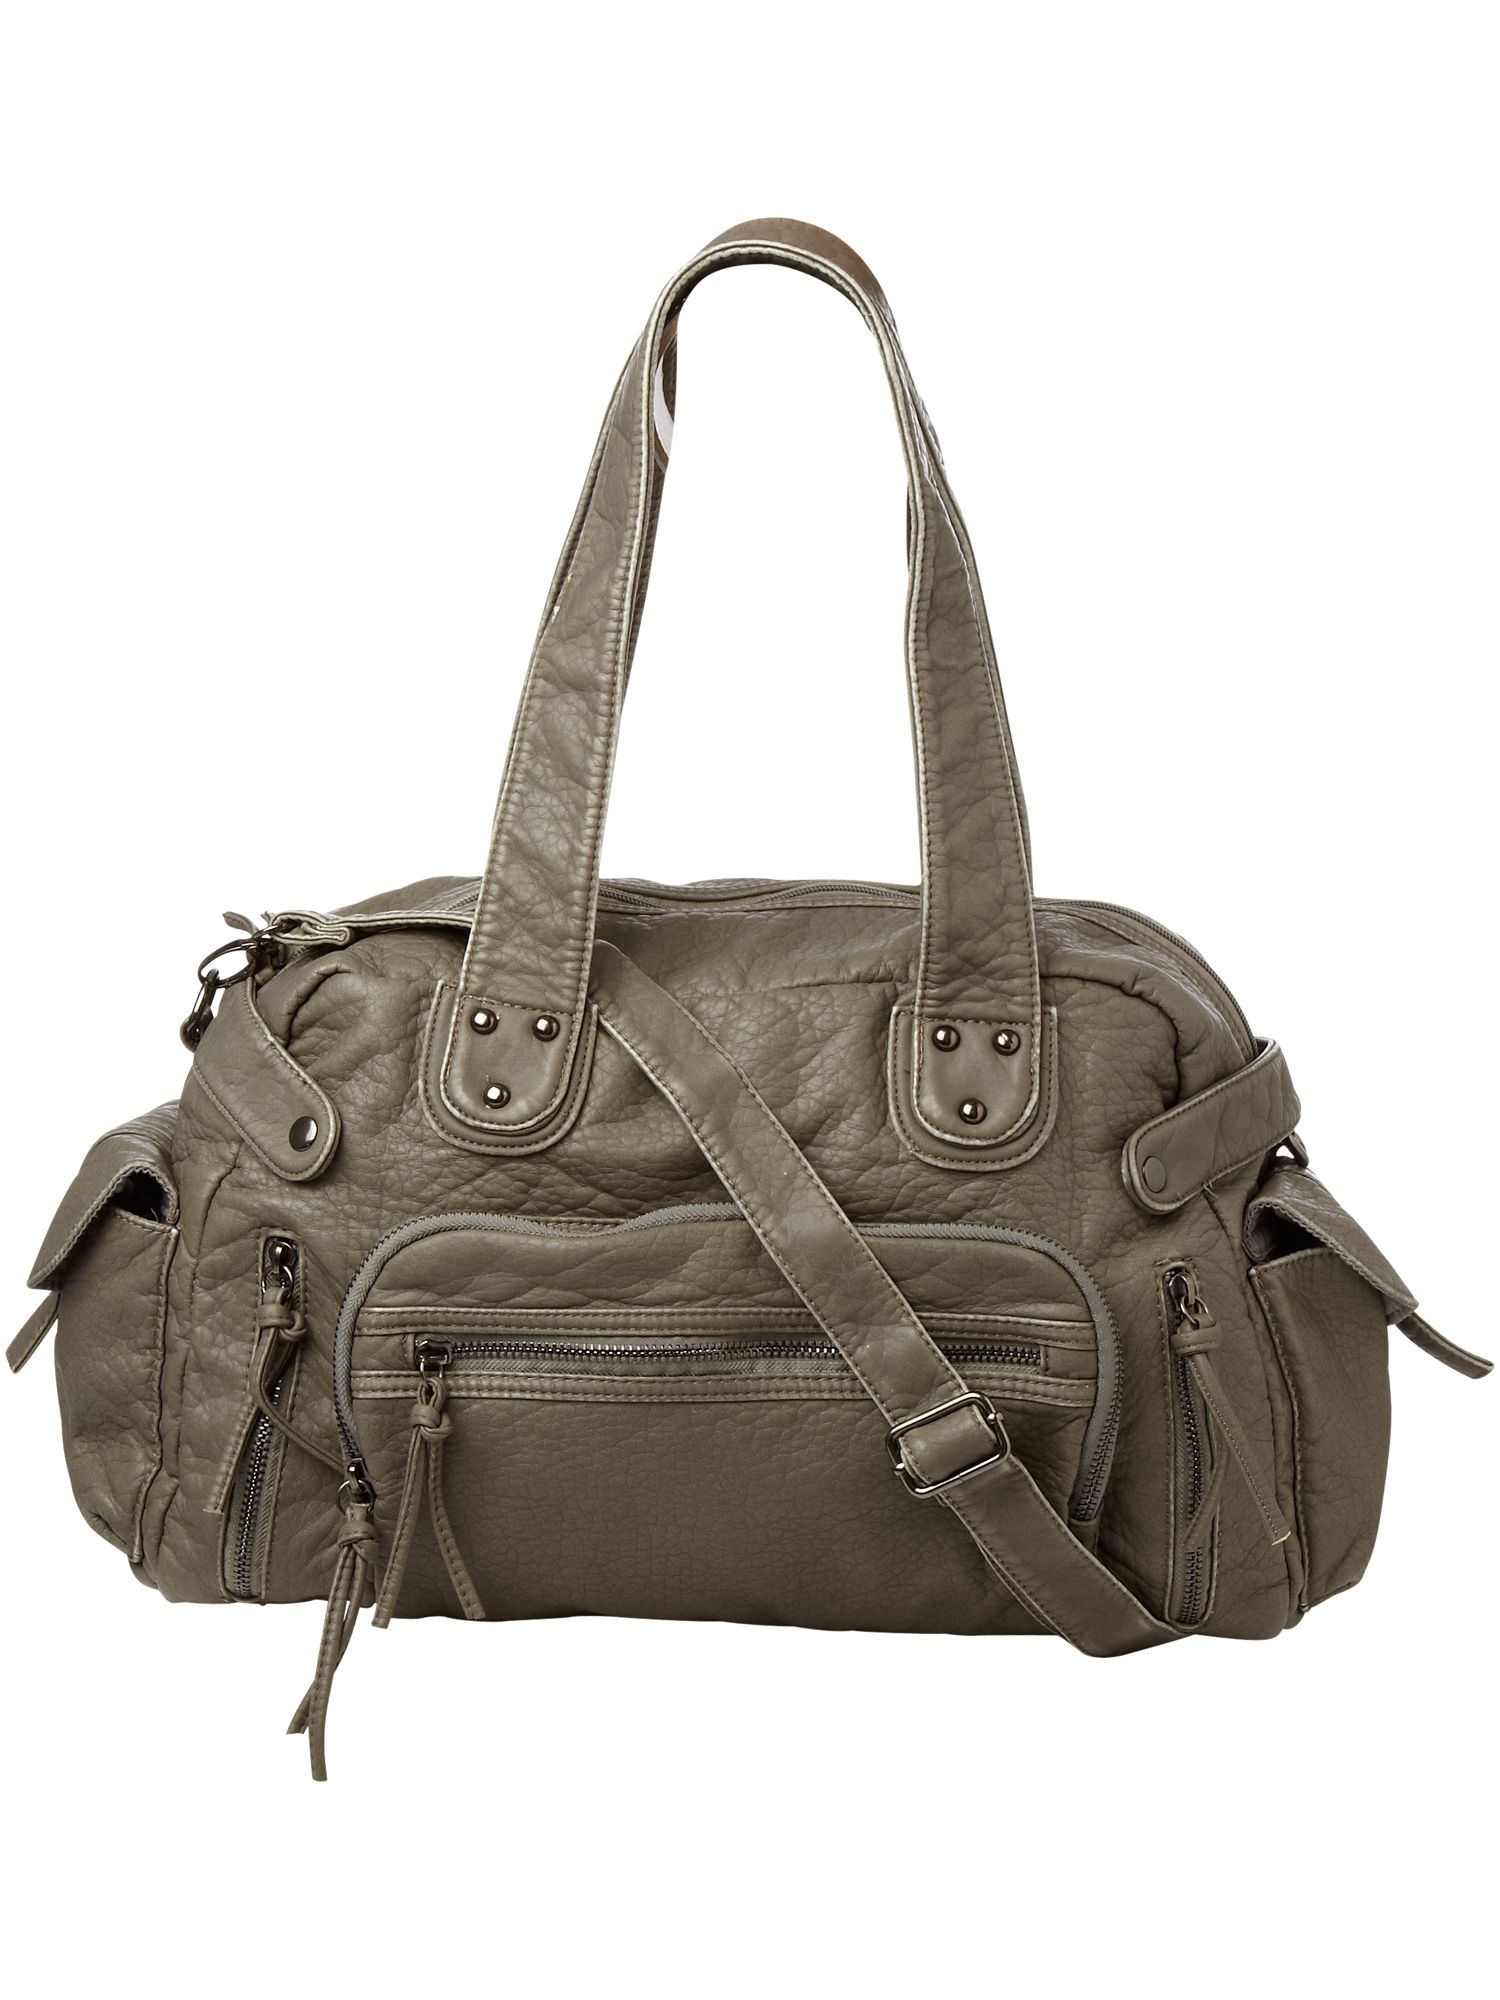 Therapy Tavi Tales washed shoulder bag product image